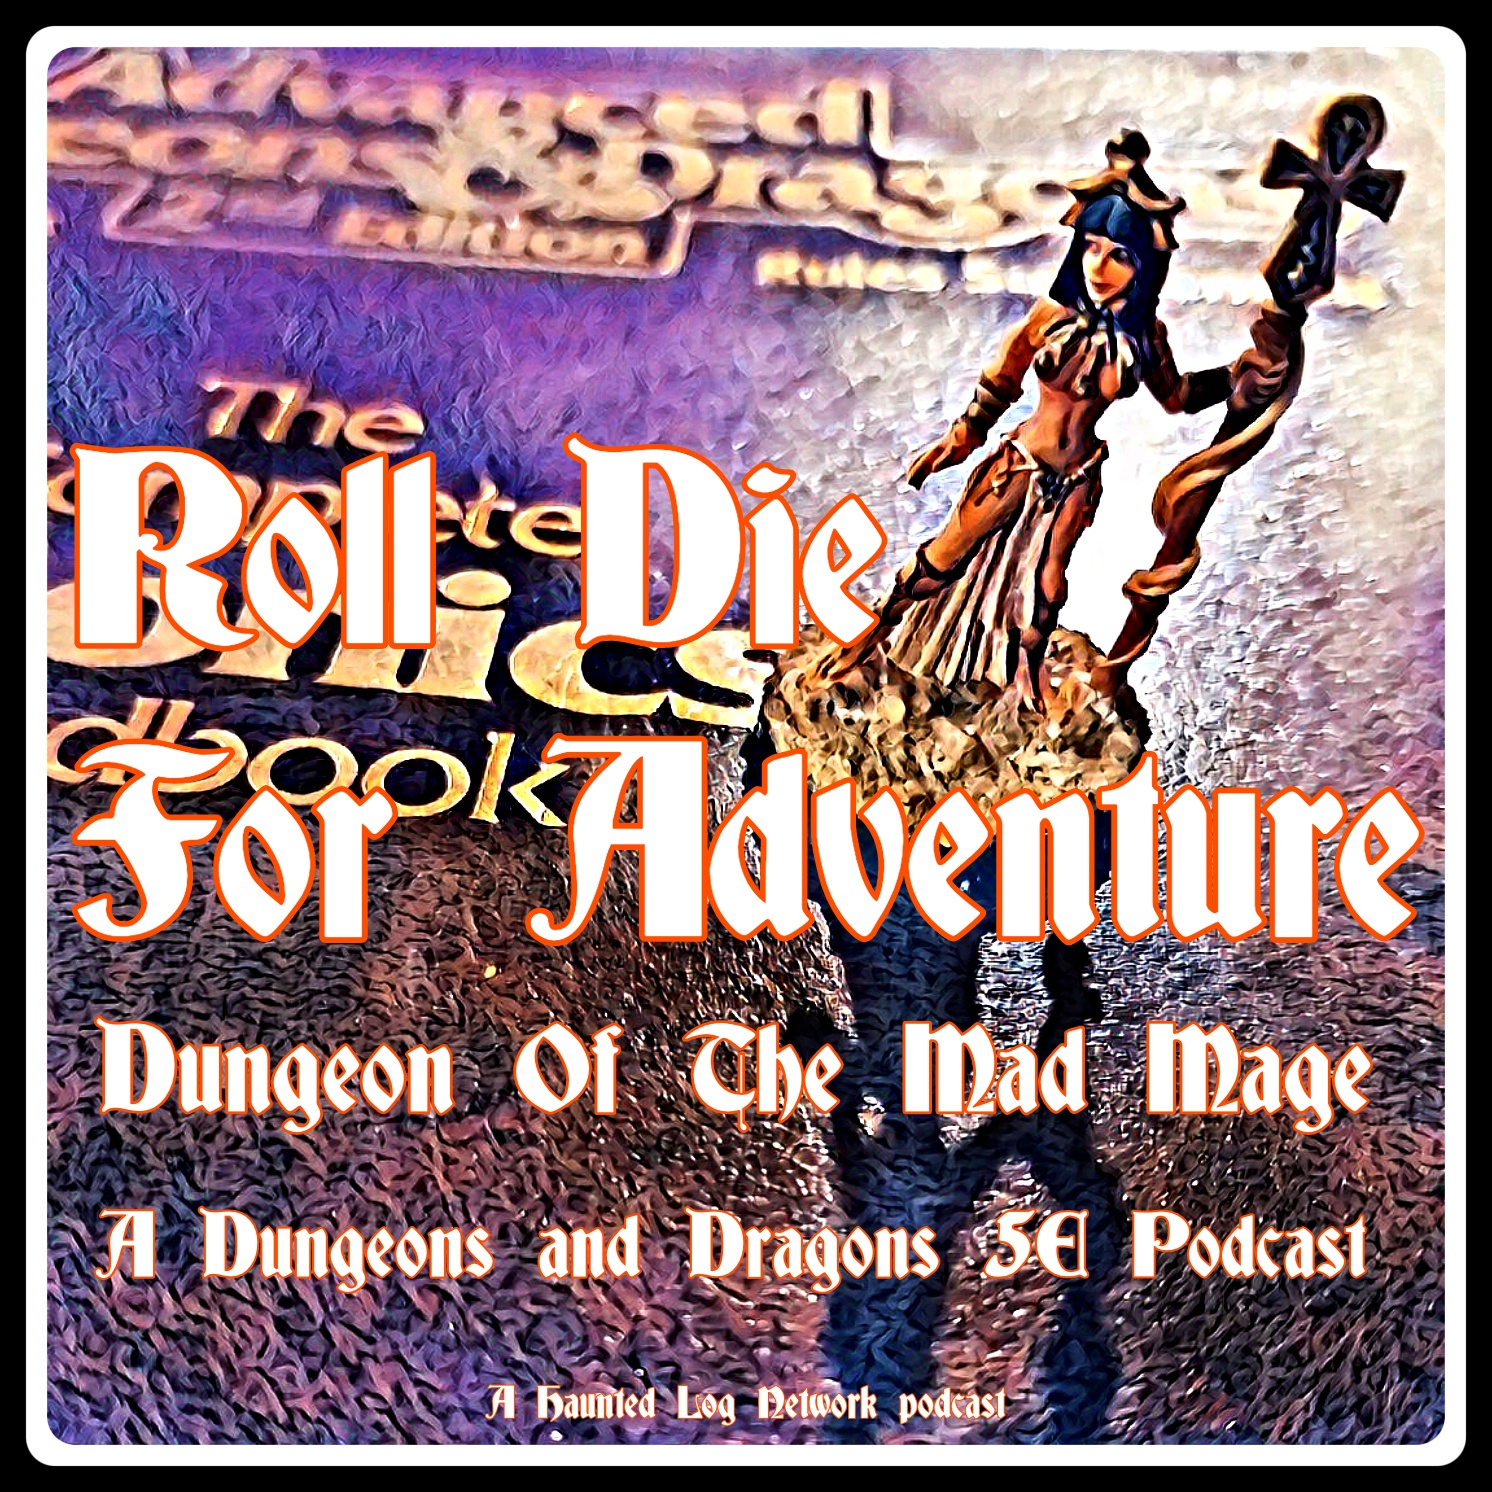 Roll Die For Adventure A Dungeons and Dragons 5e podcast Dungeon of The Mad Mage Episode 11